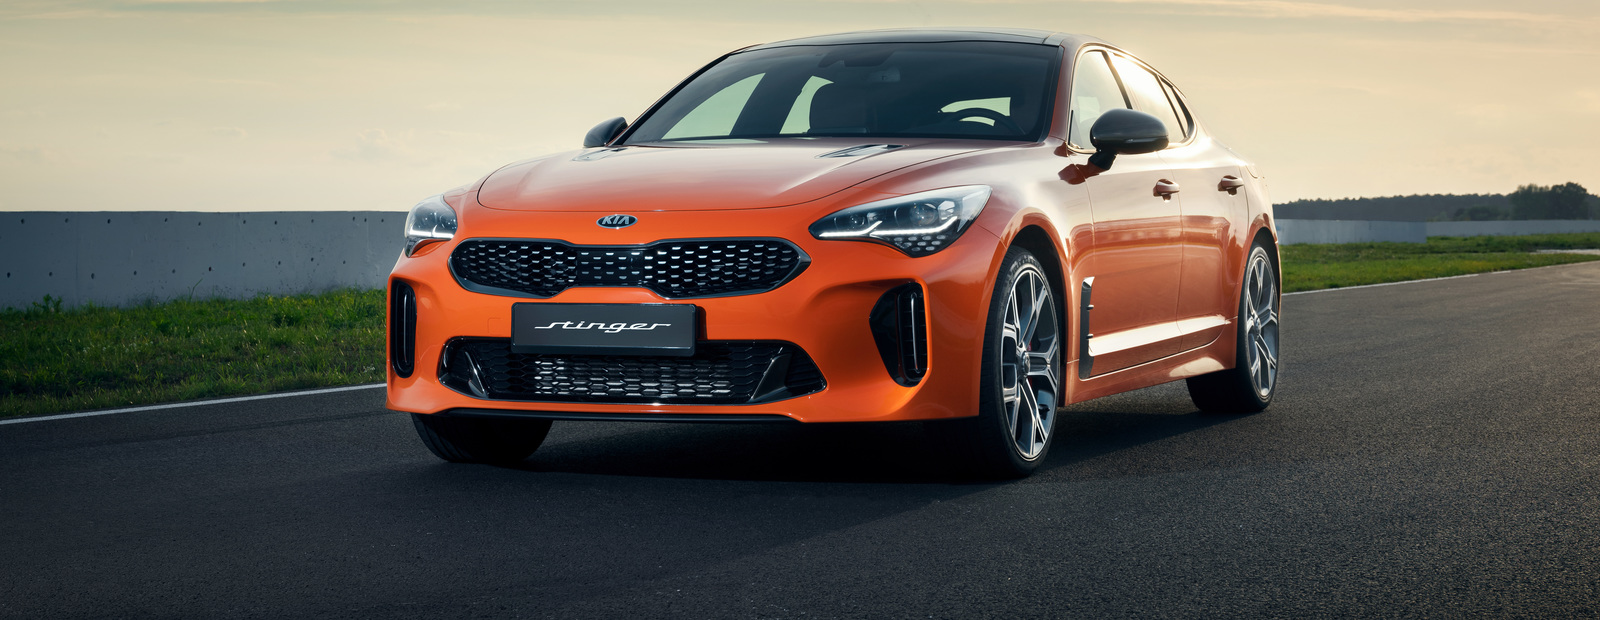 The Kia Stinger fell short of its creators' expectations, demonstrating sales numbers far less impressive than what the South Korean manufacturer had hoped to see.